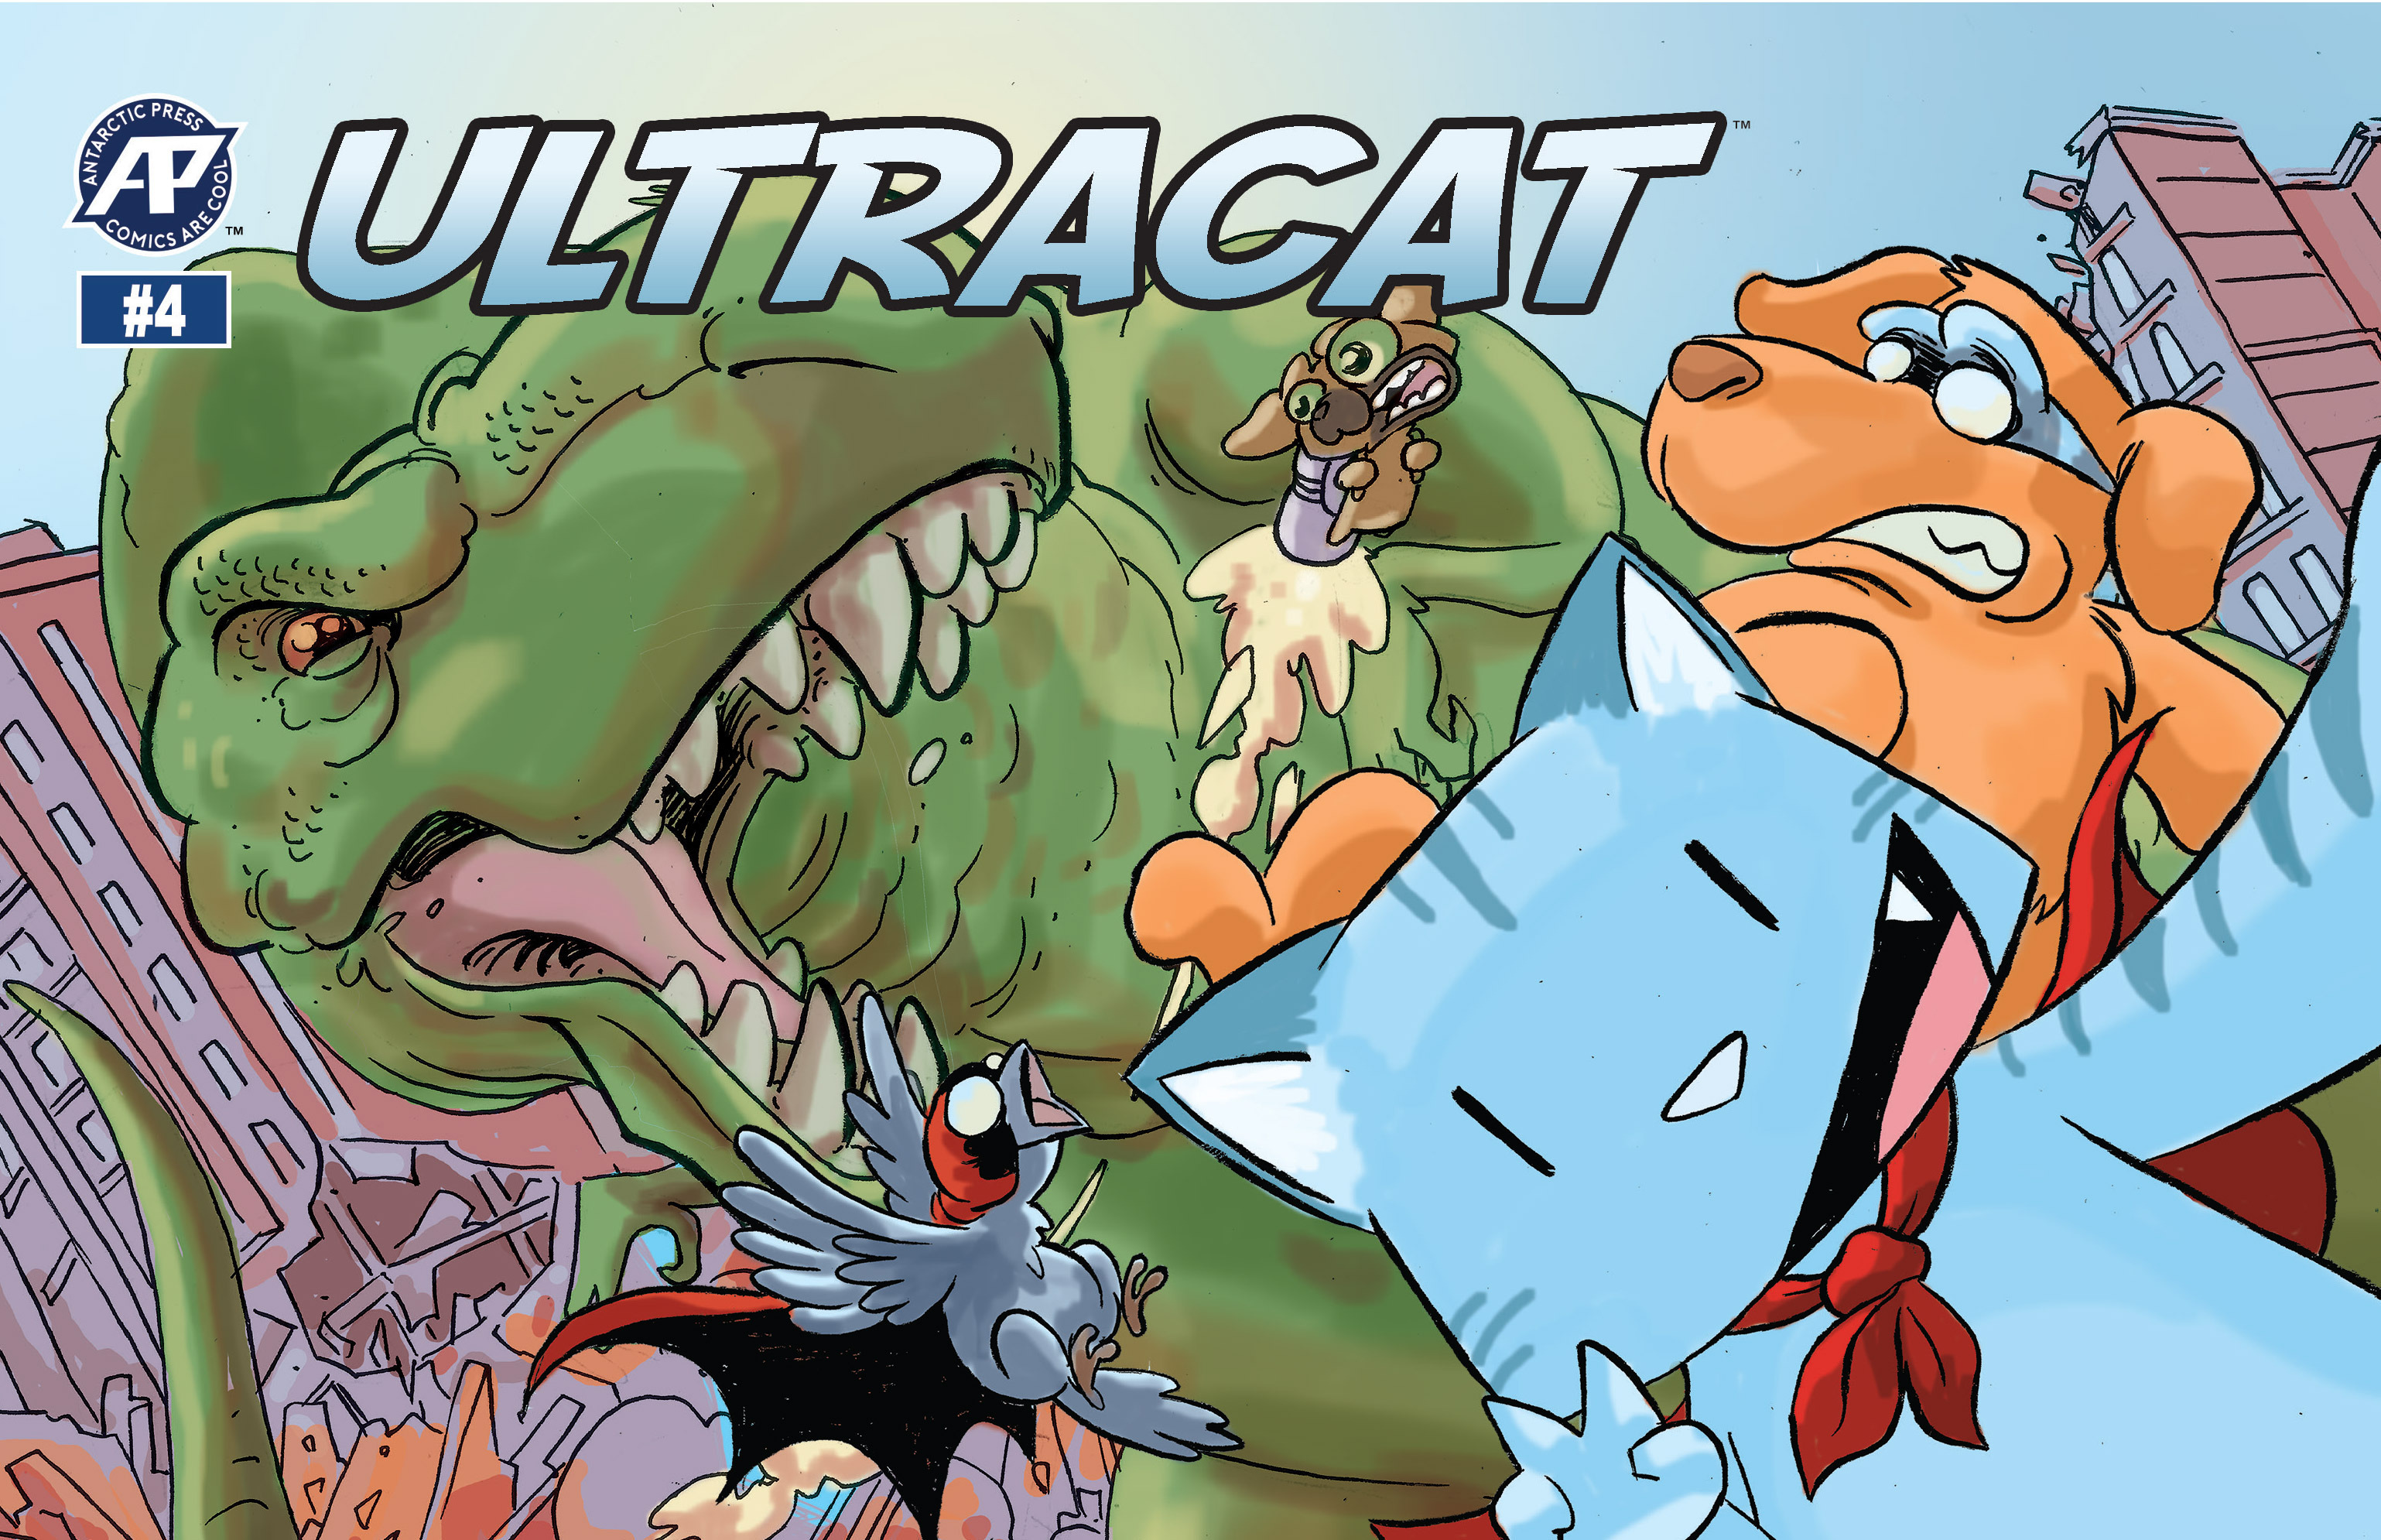 Read online Ultracat comic -  Issue #4 - 1